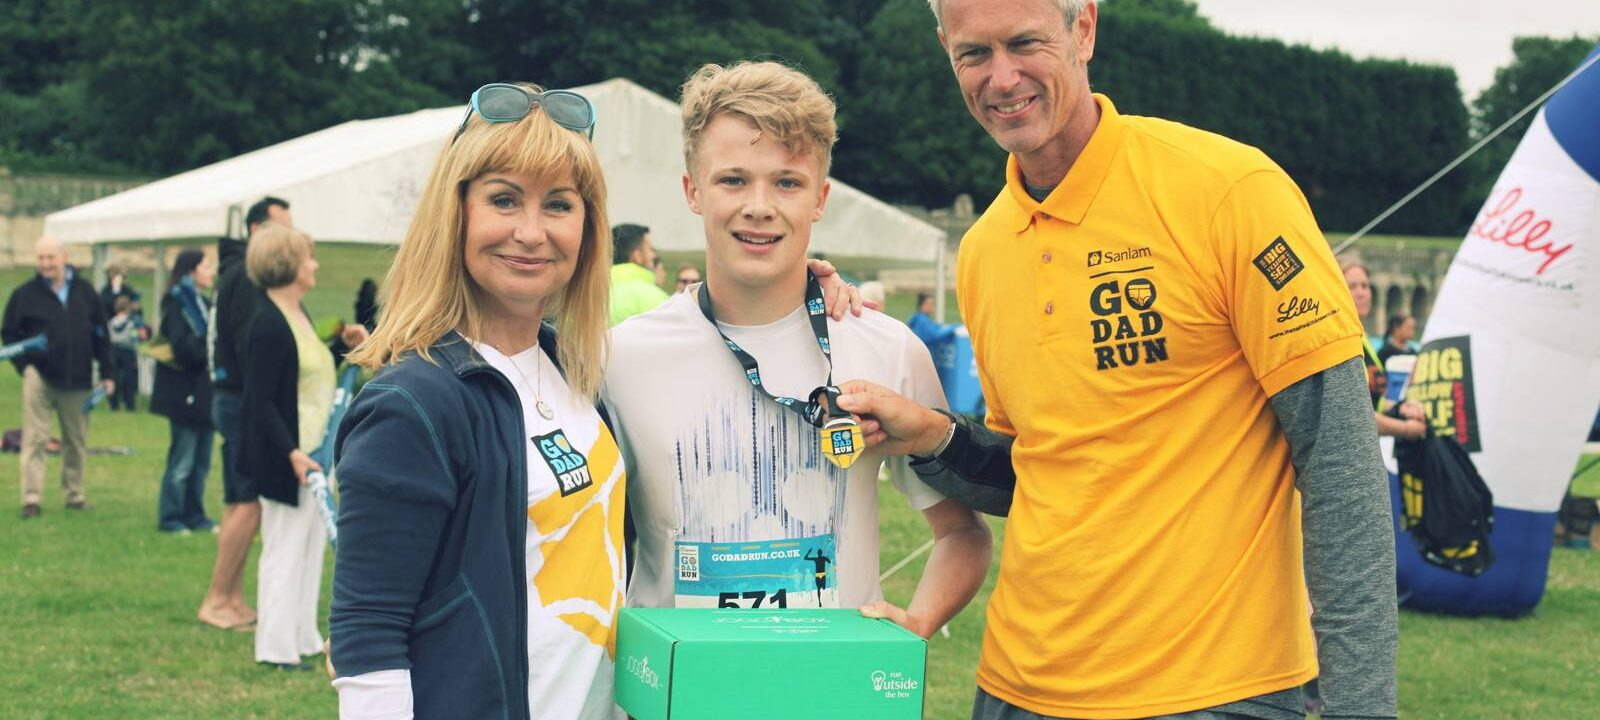 Mark Foster swimmer Siân Lloyd and the winner at Go Dad Run